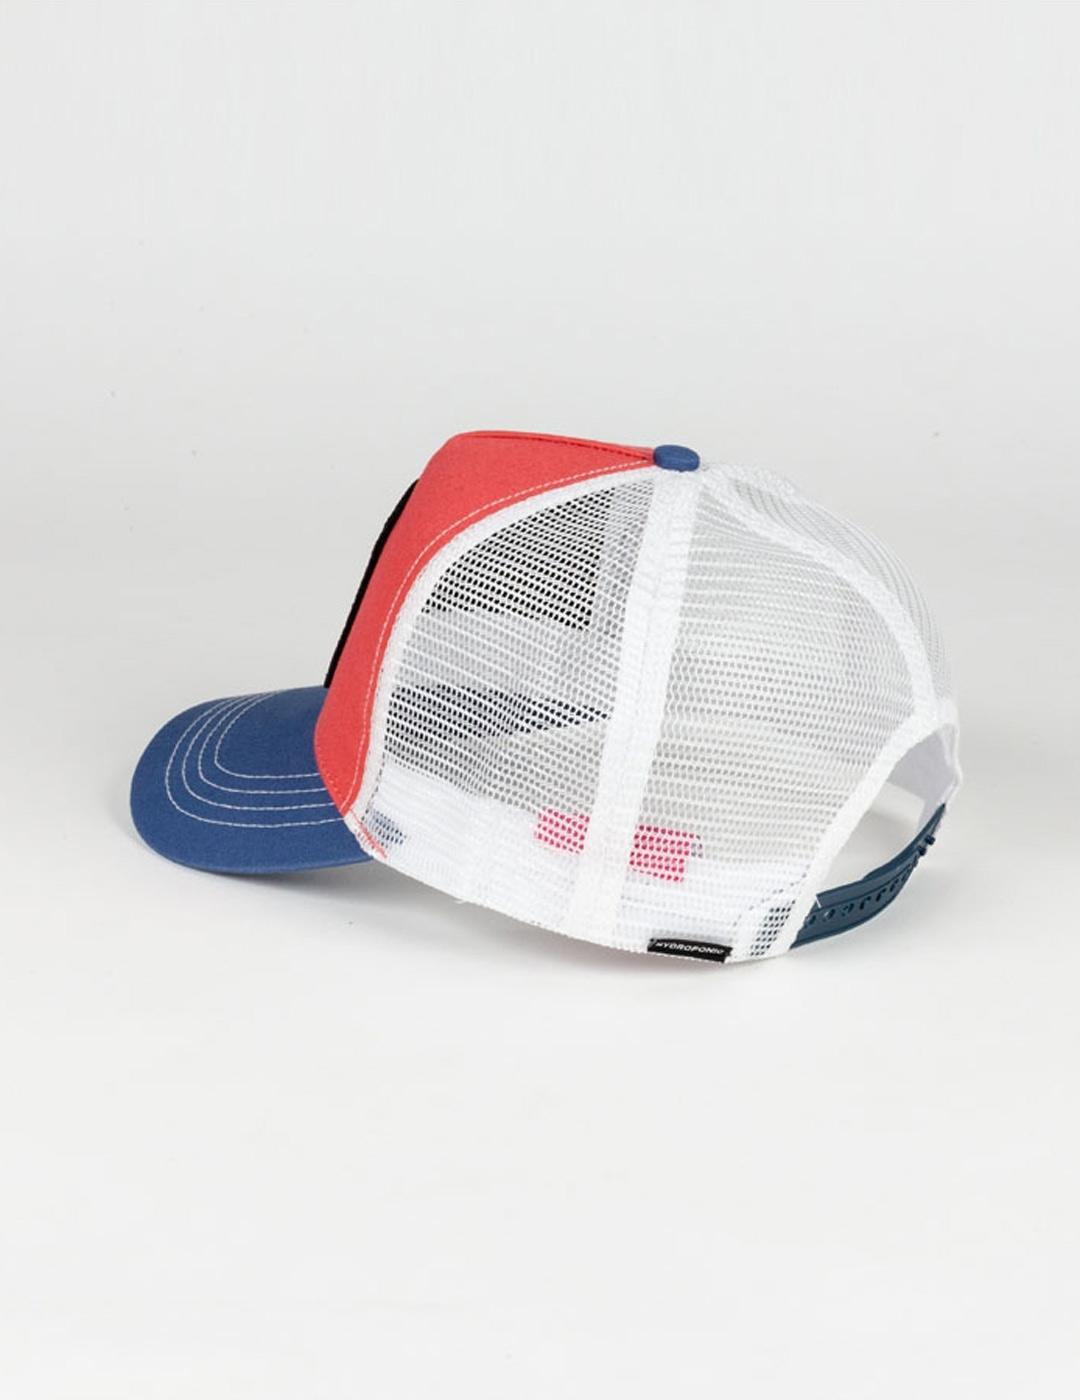 Gorra HYDROPONIC FUN PINK SHOW - Coral / Blue / White